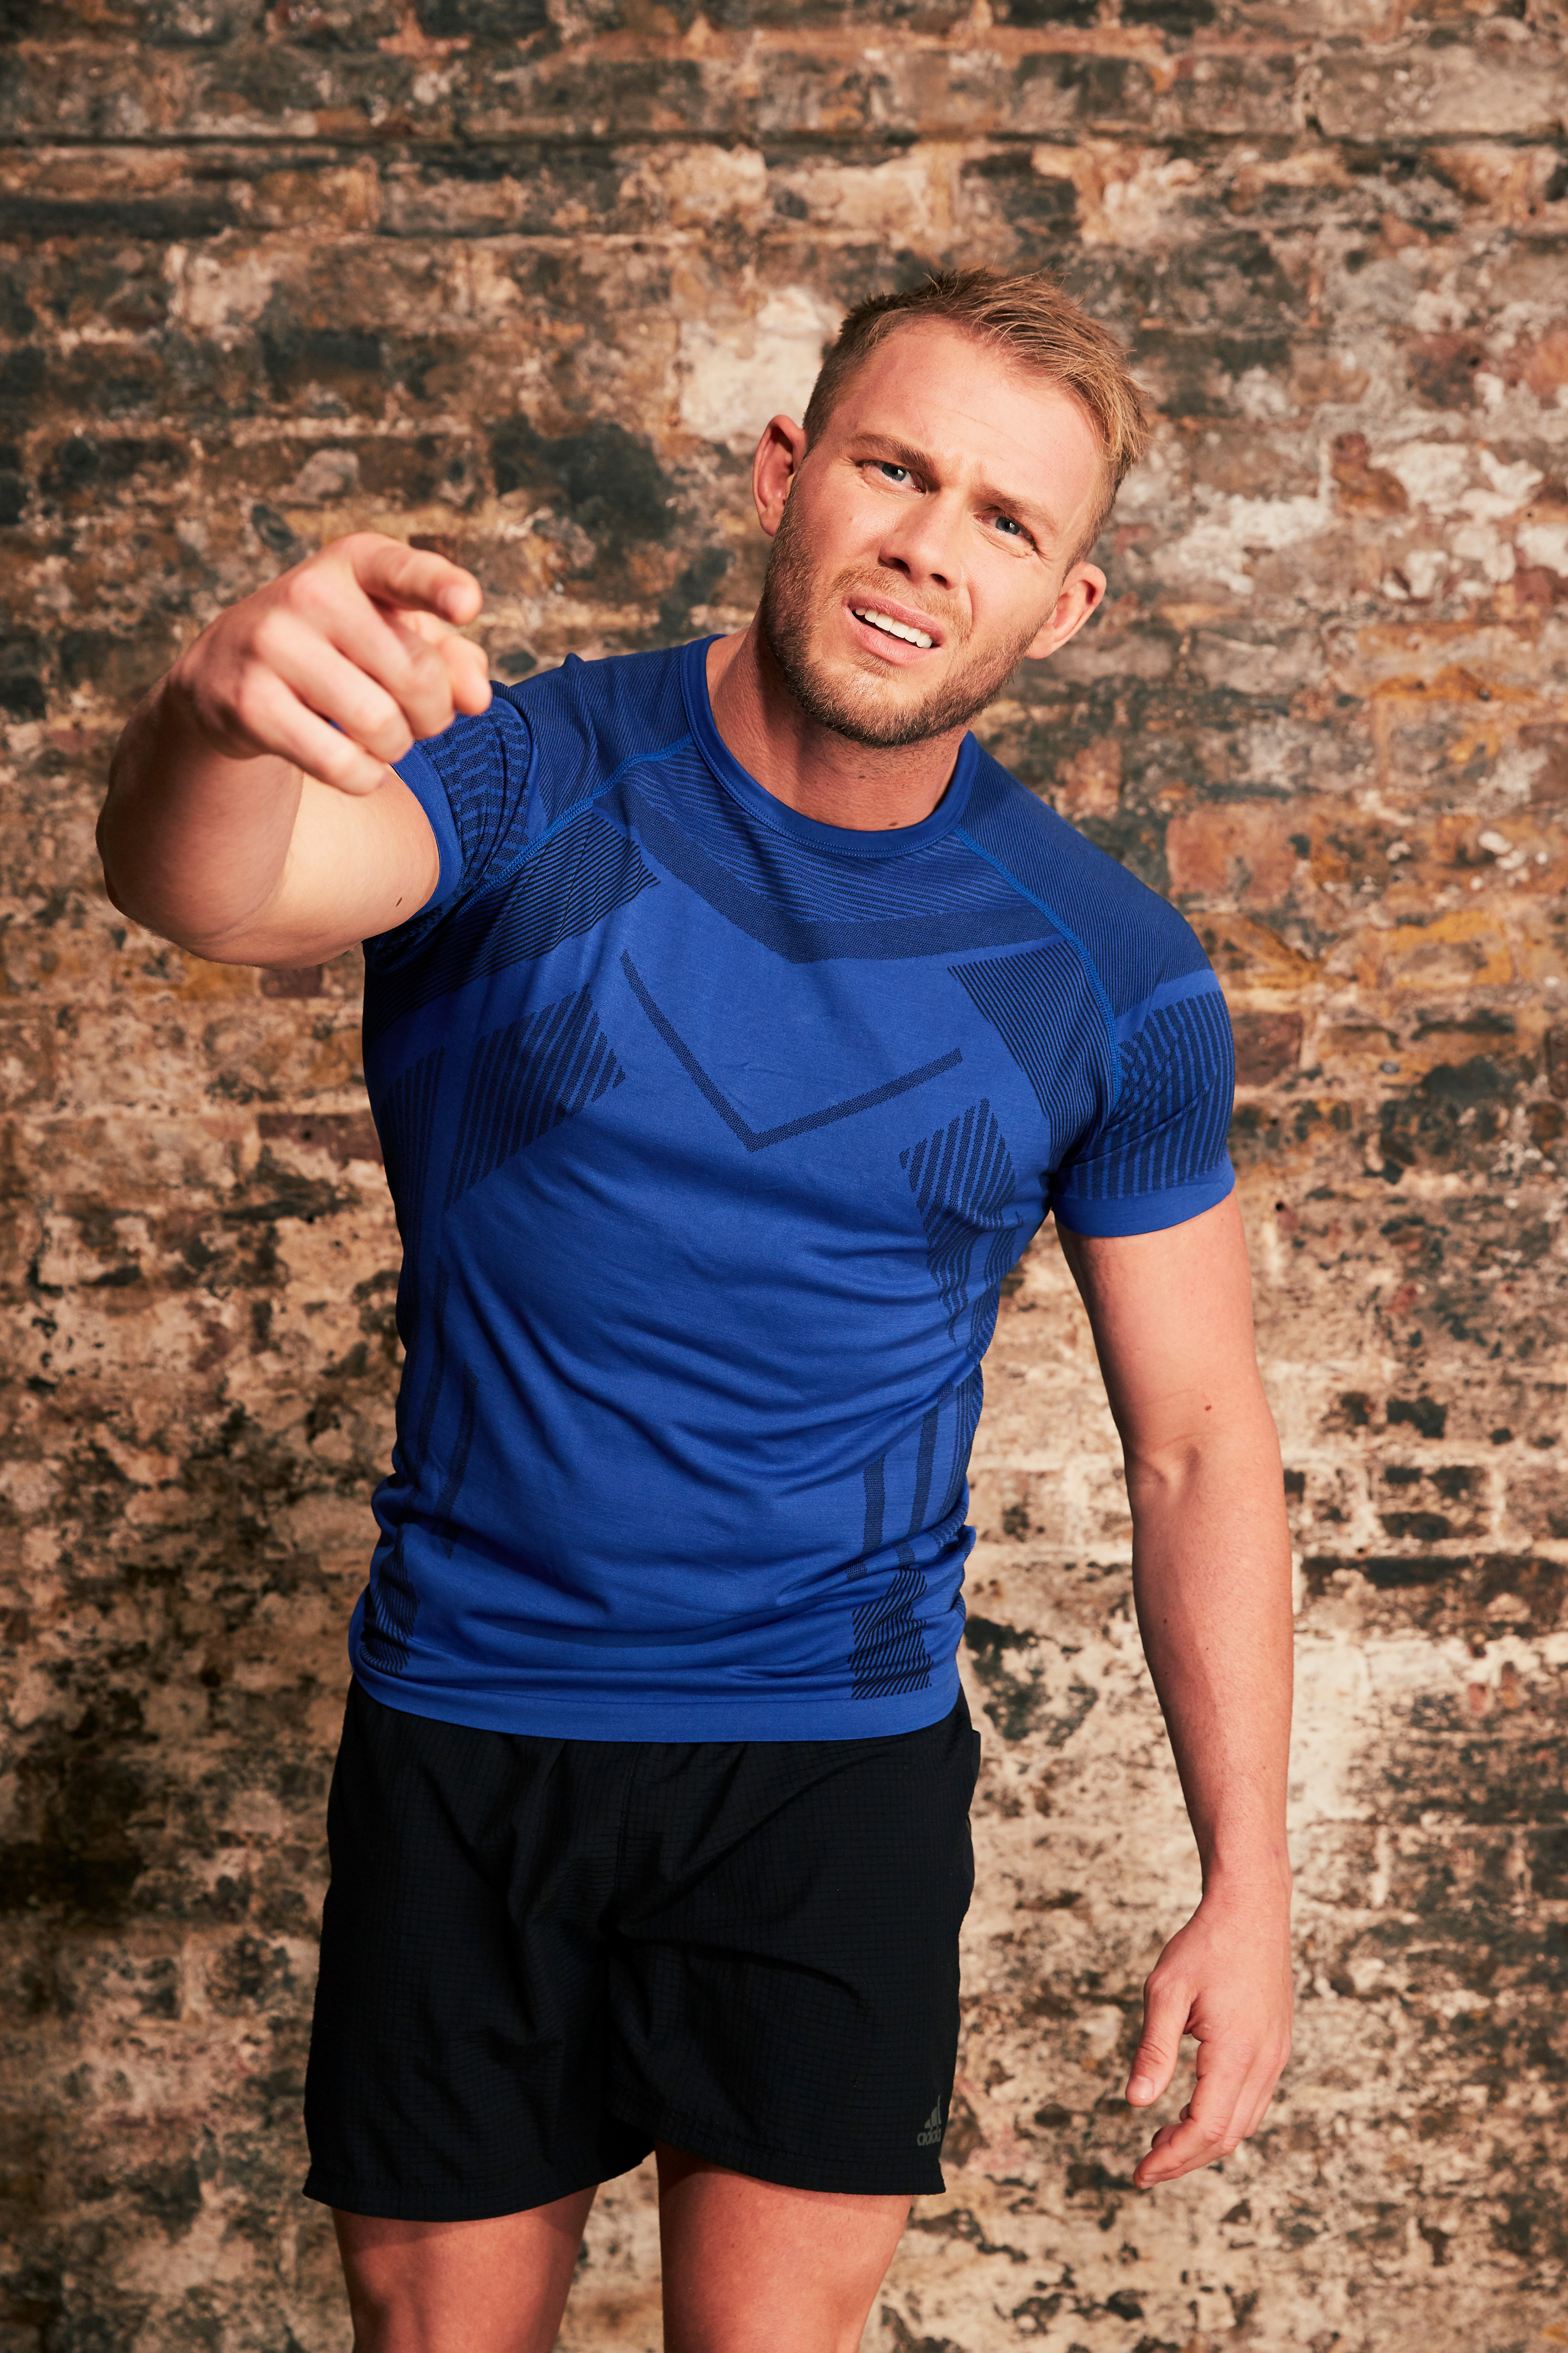 Fitness Guru James Smith Calls Out Delusional Victim-Mentality Fat People, Who Use Fat Shaming As An Excuse To Stay Unhealthy